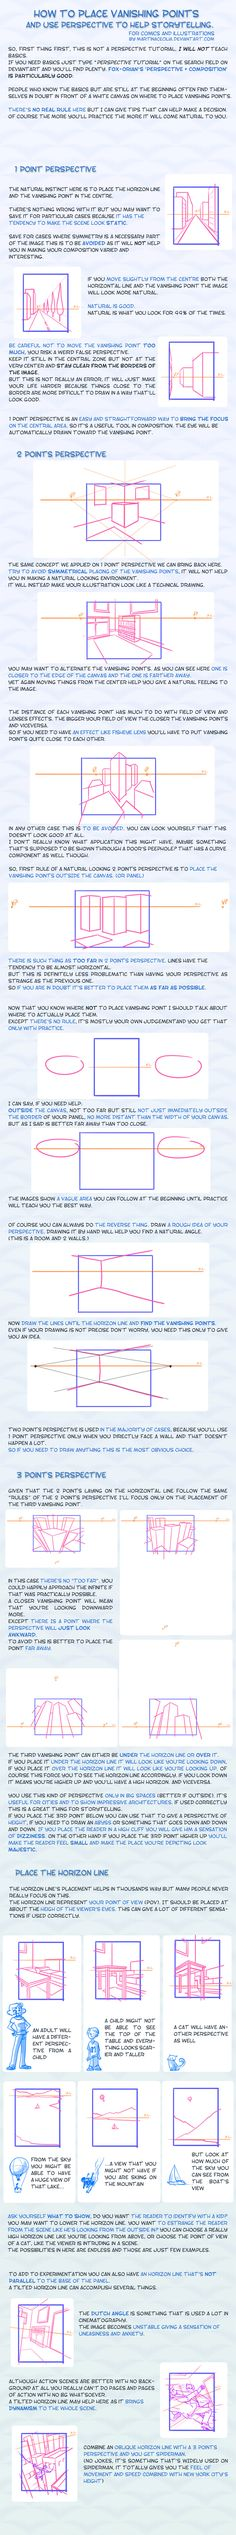 How to place vanishing points by *martinacecilia on deviantART via PinCG.com